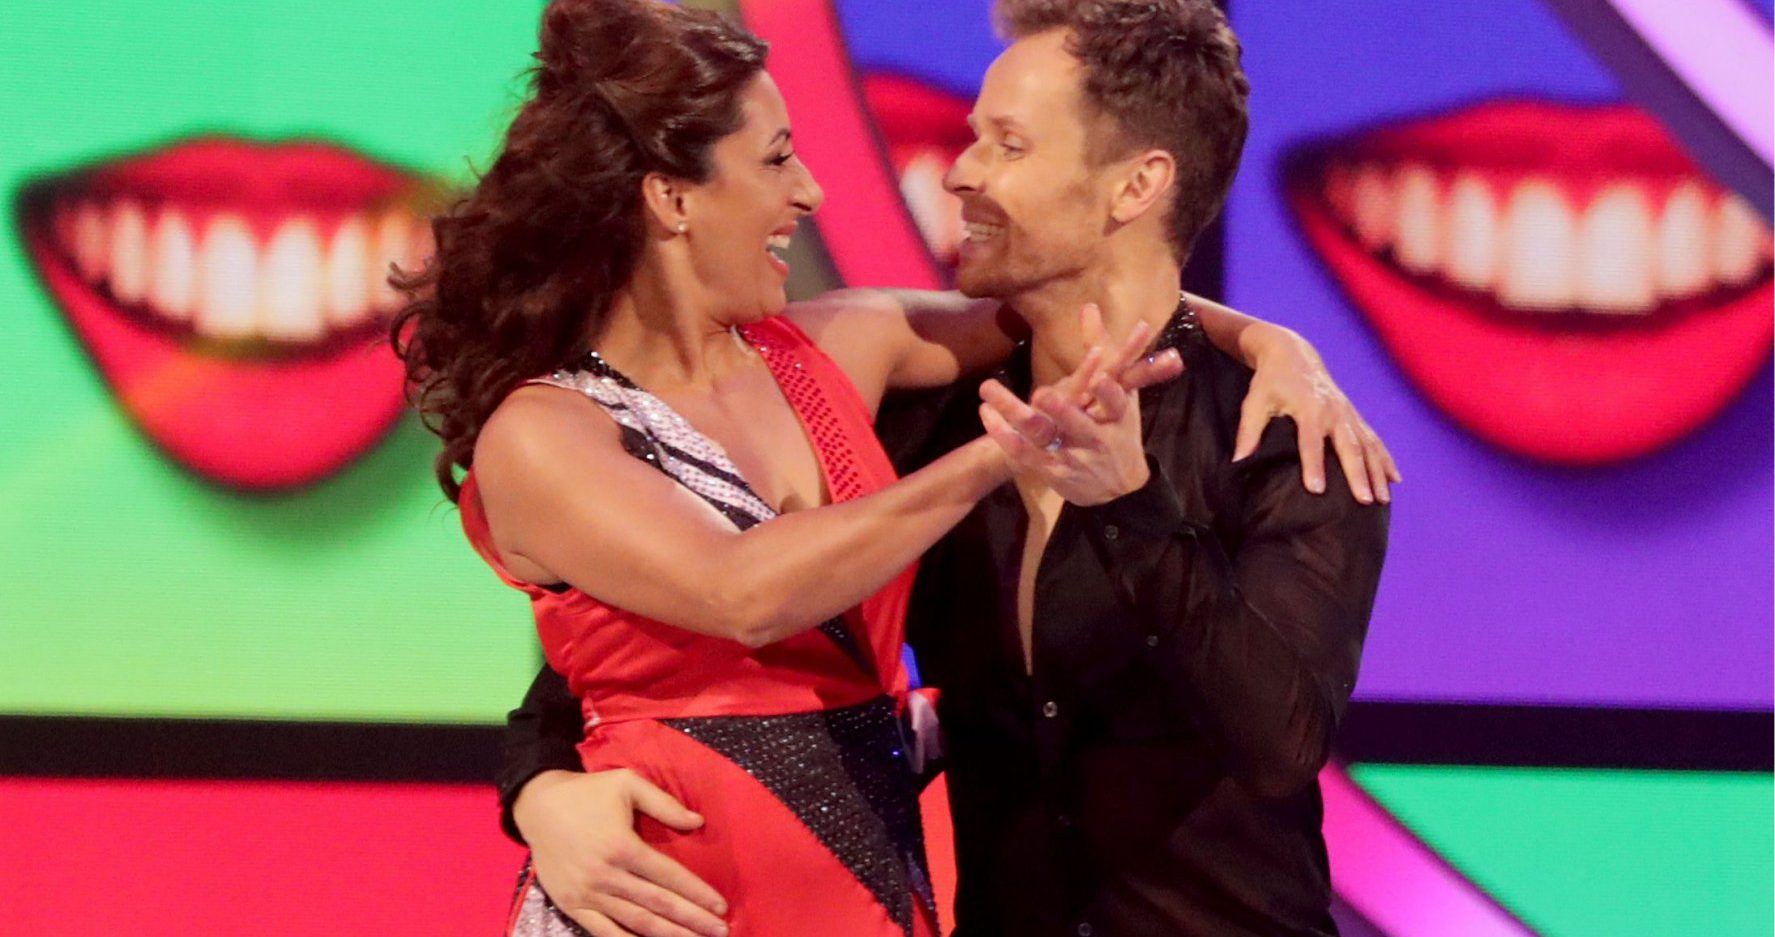 Saira Khan praises Dancing On Ice pro Mark Hanretty as 'most amazing human being' as she exits competition